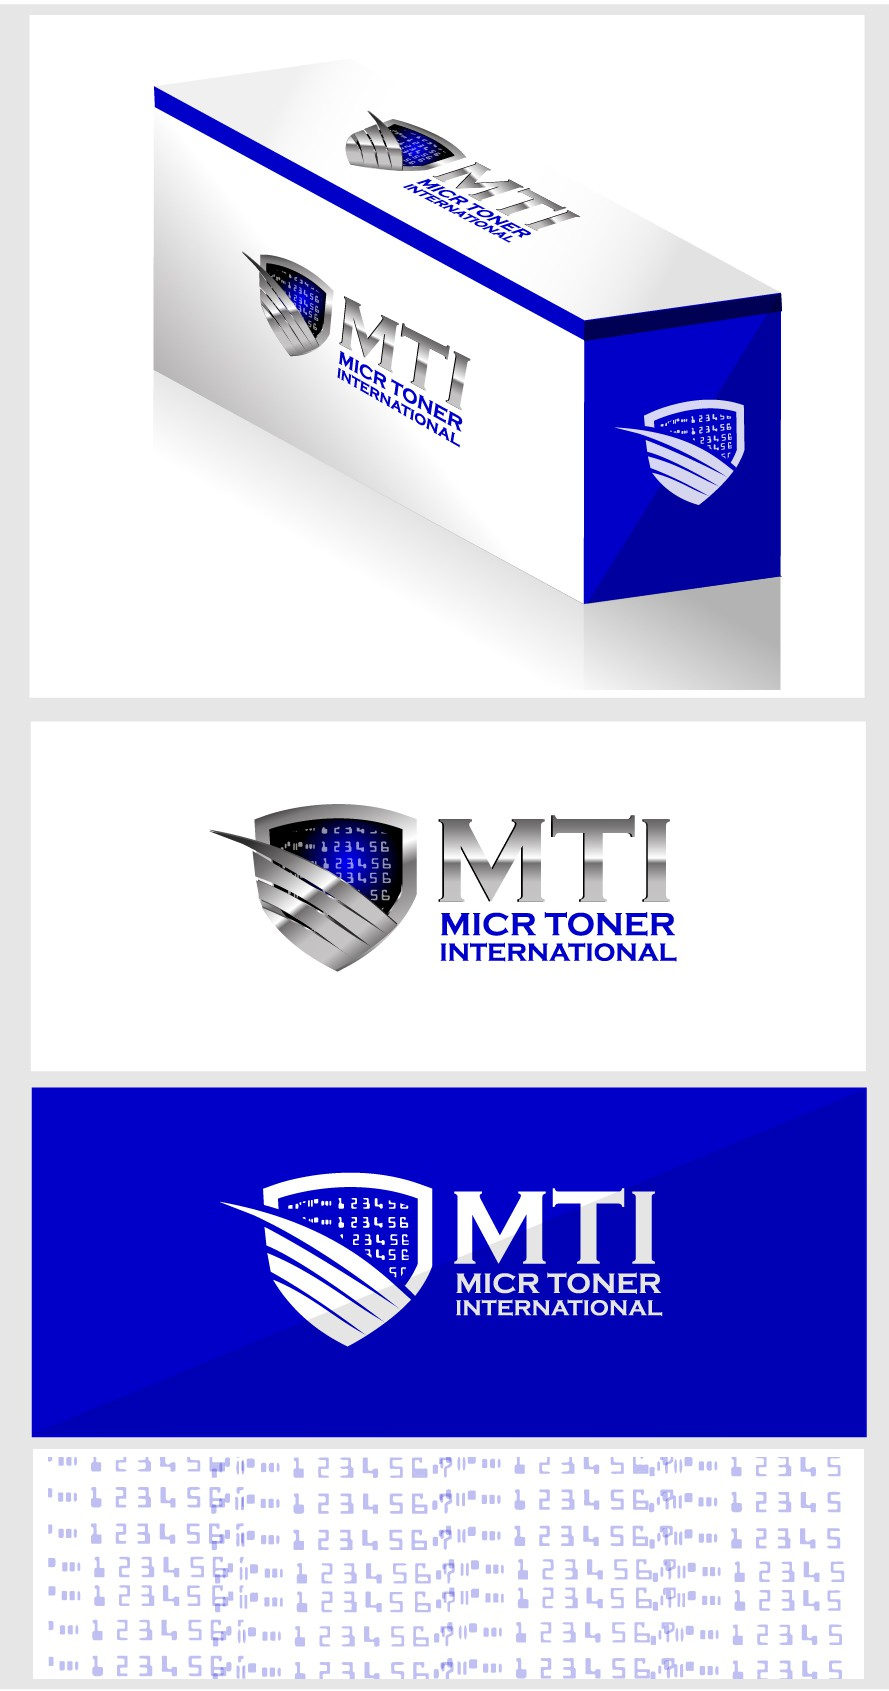 Help Micr Toner International with a new logo for packaging and brochures.